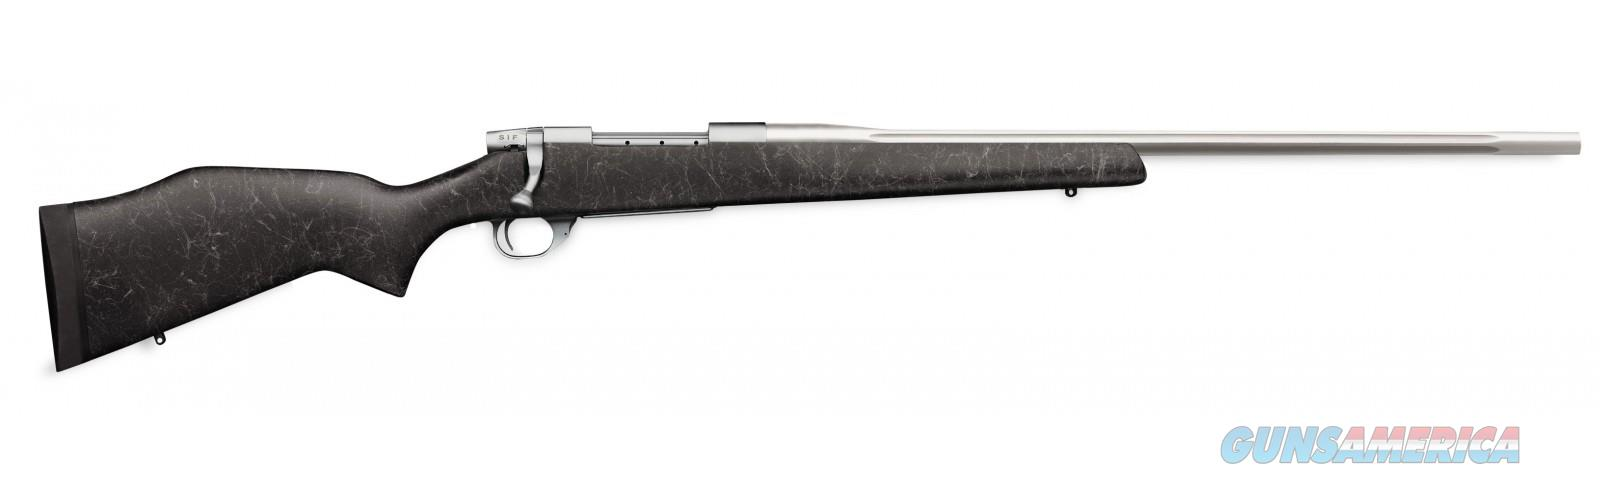 "Weatherby Vanguard Accuguard .300 Win Mag 24"" VCC300NR4O   Guns > Rifles > Weatherby Rifles > Sporting"